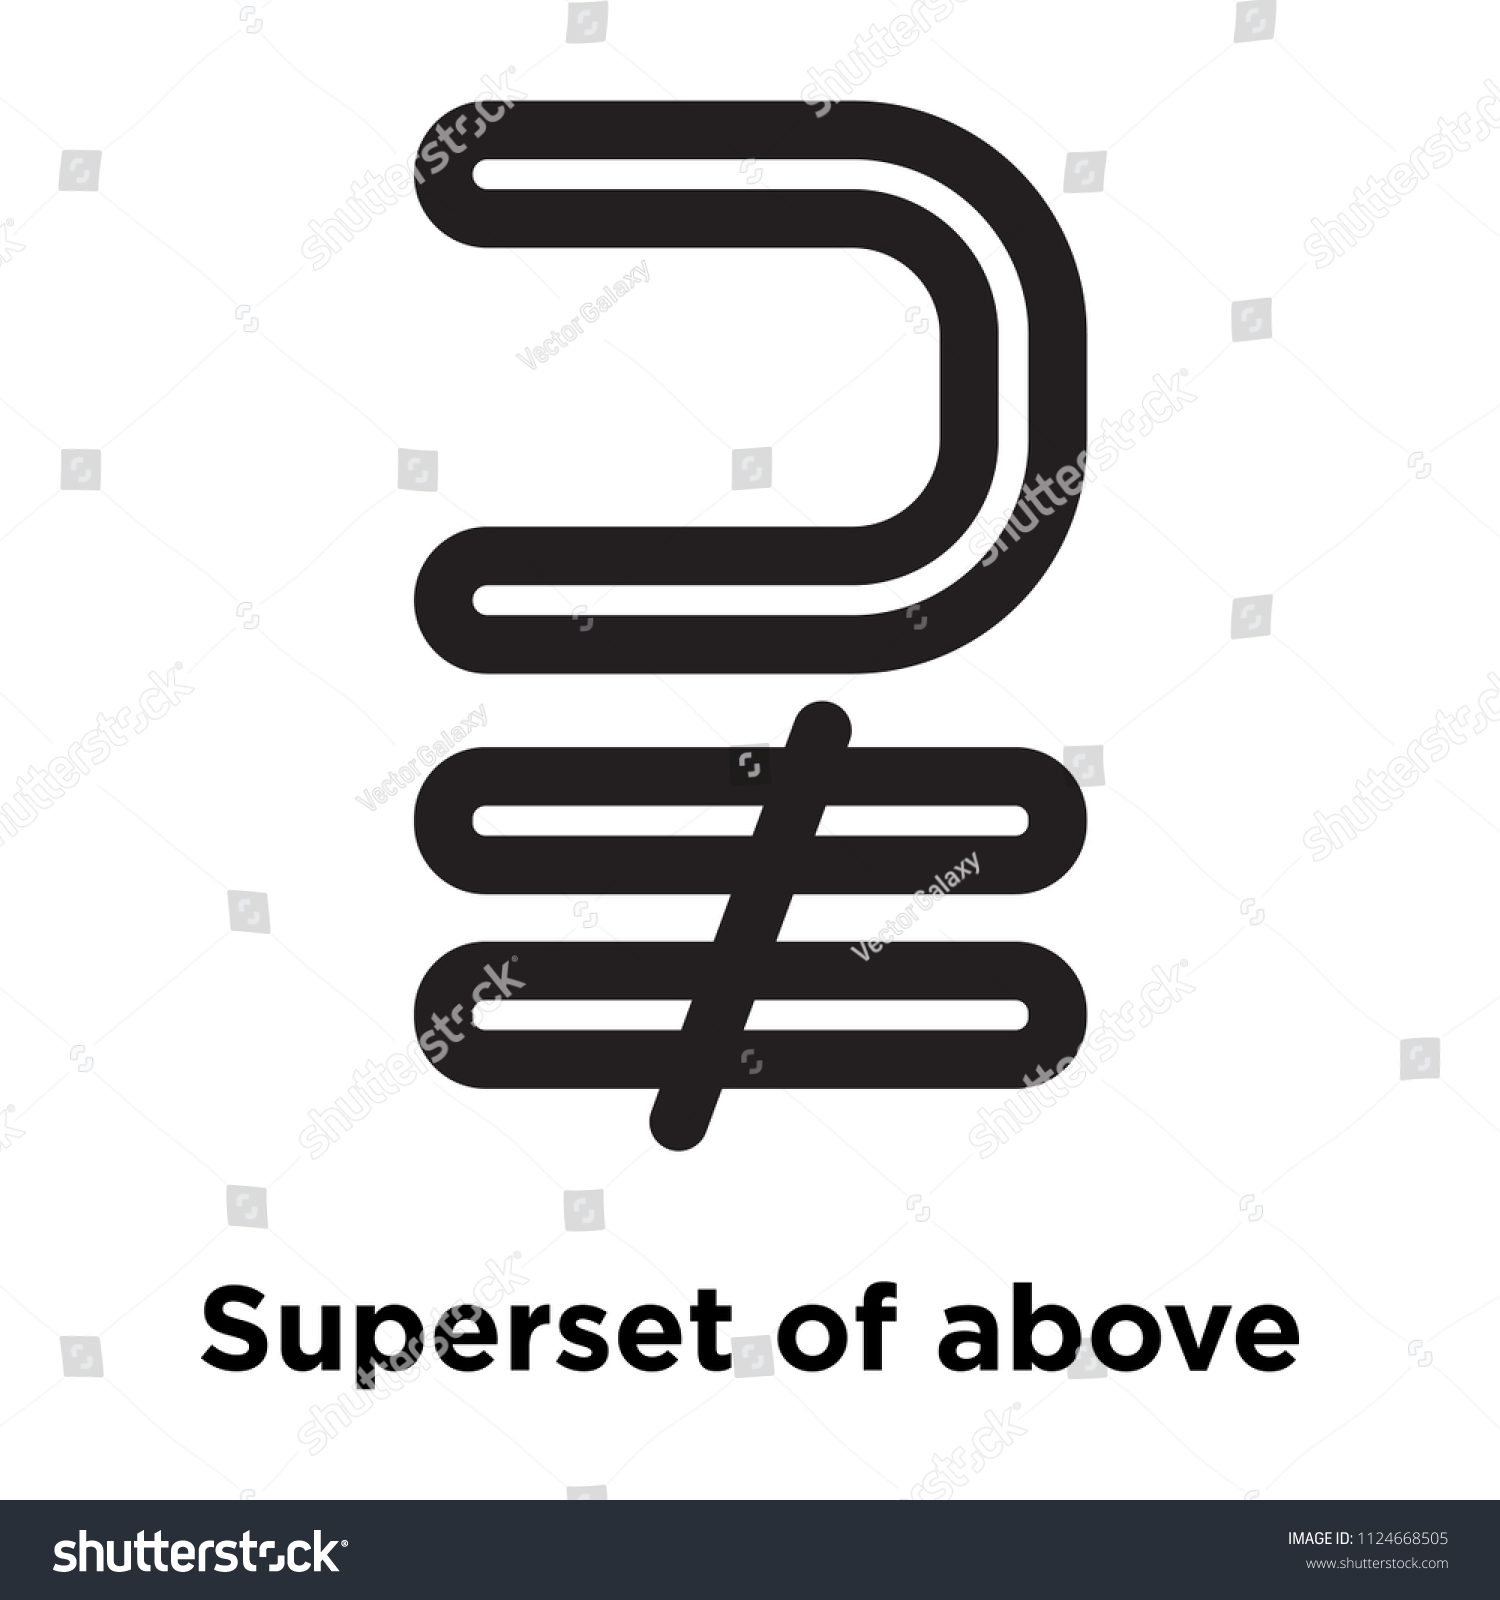 Superset Above Not Equal Symbol Icon Stock Vector Royalty Free